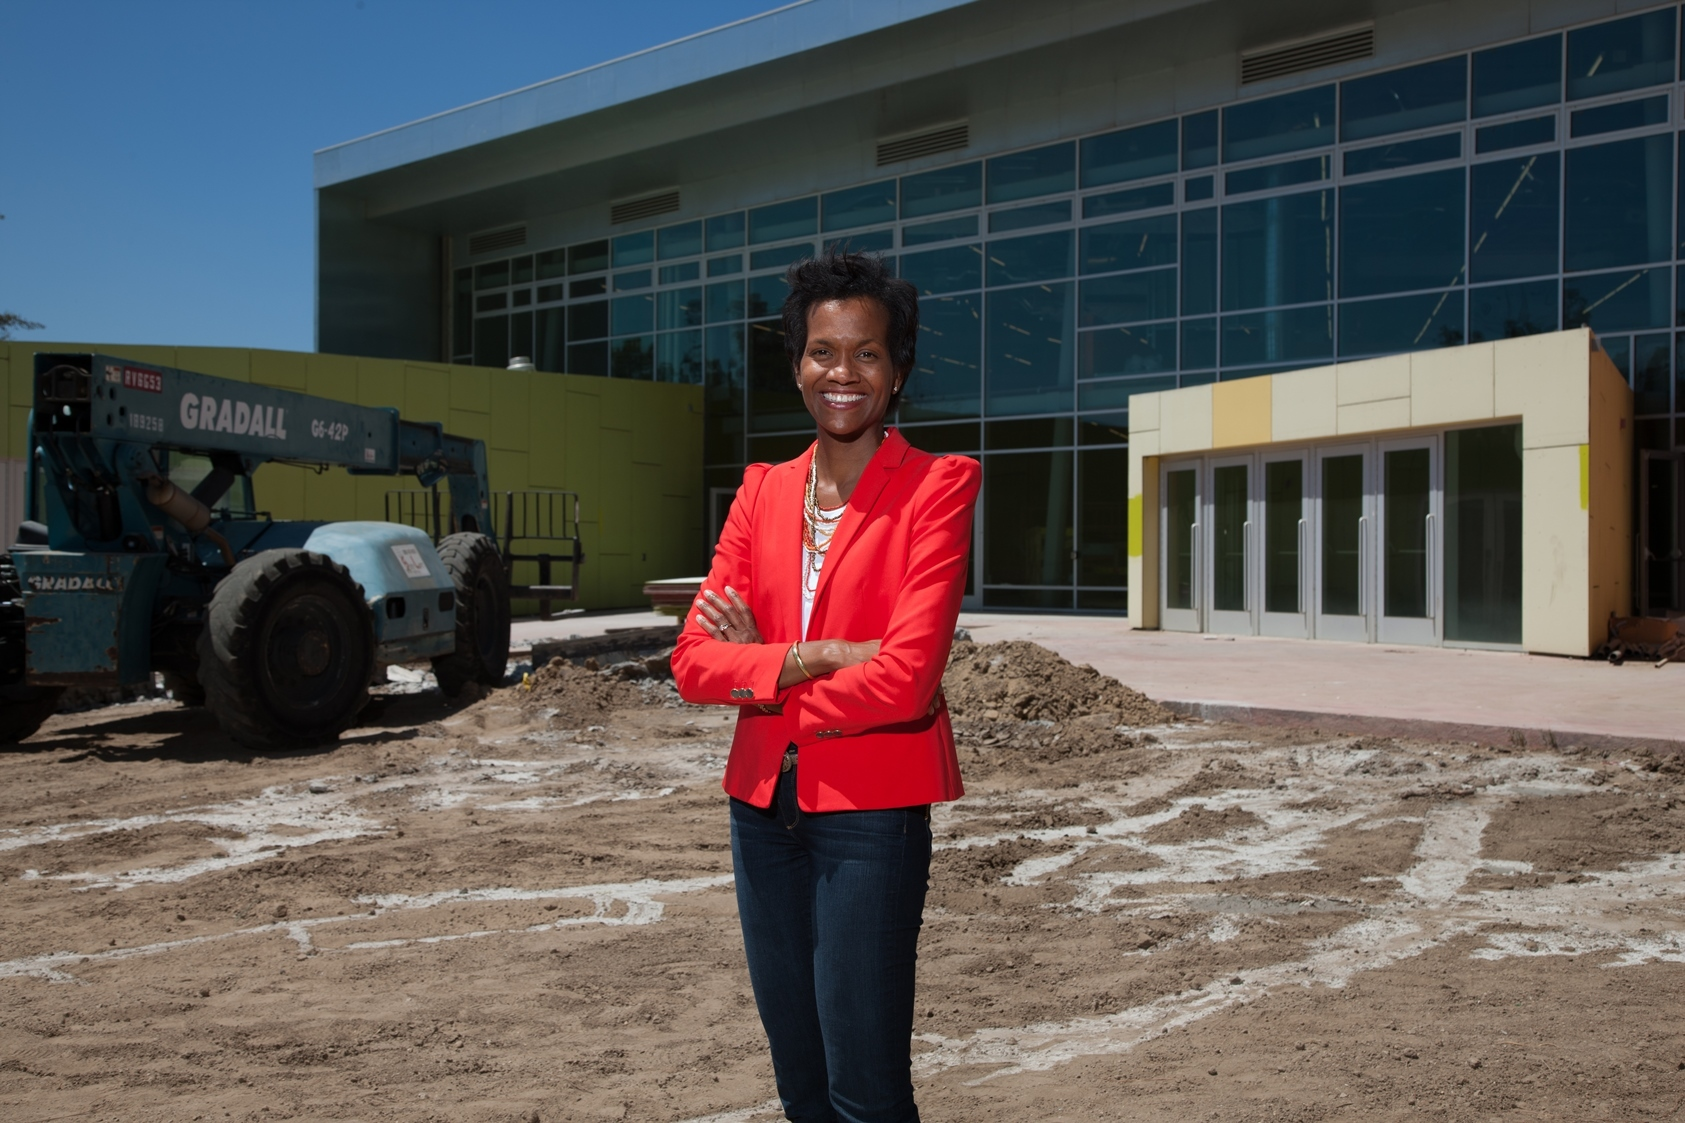 Kafi Blumenfield hired as new executive director of Discovery Cube Los Angeles. (Photo: Business Wire)